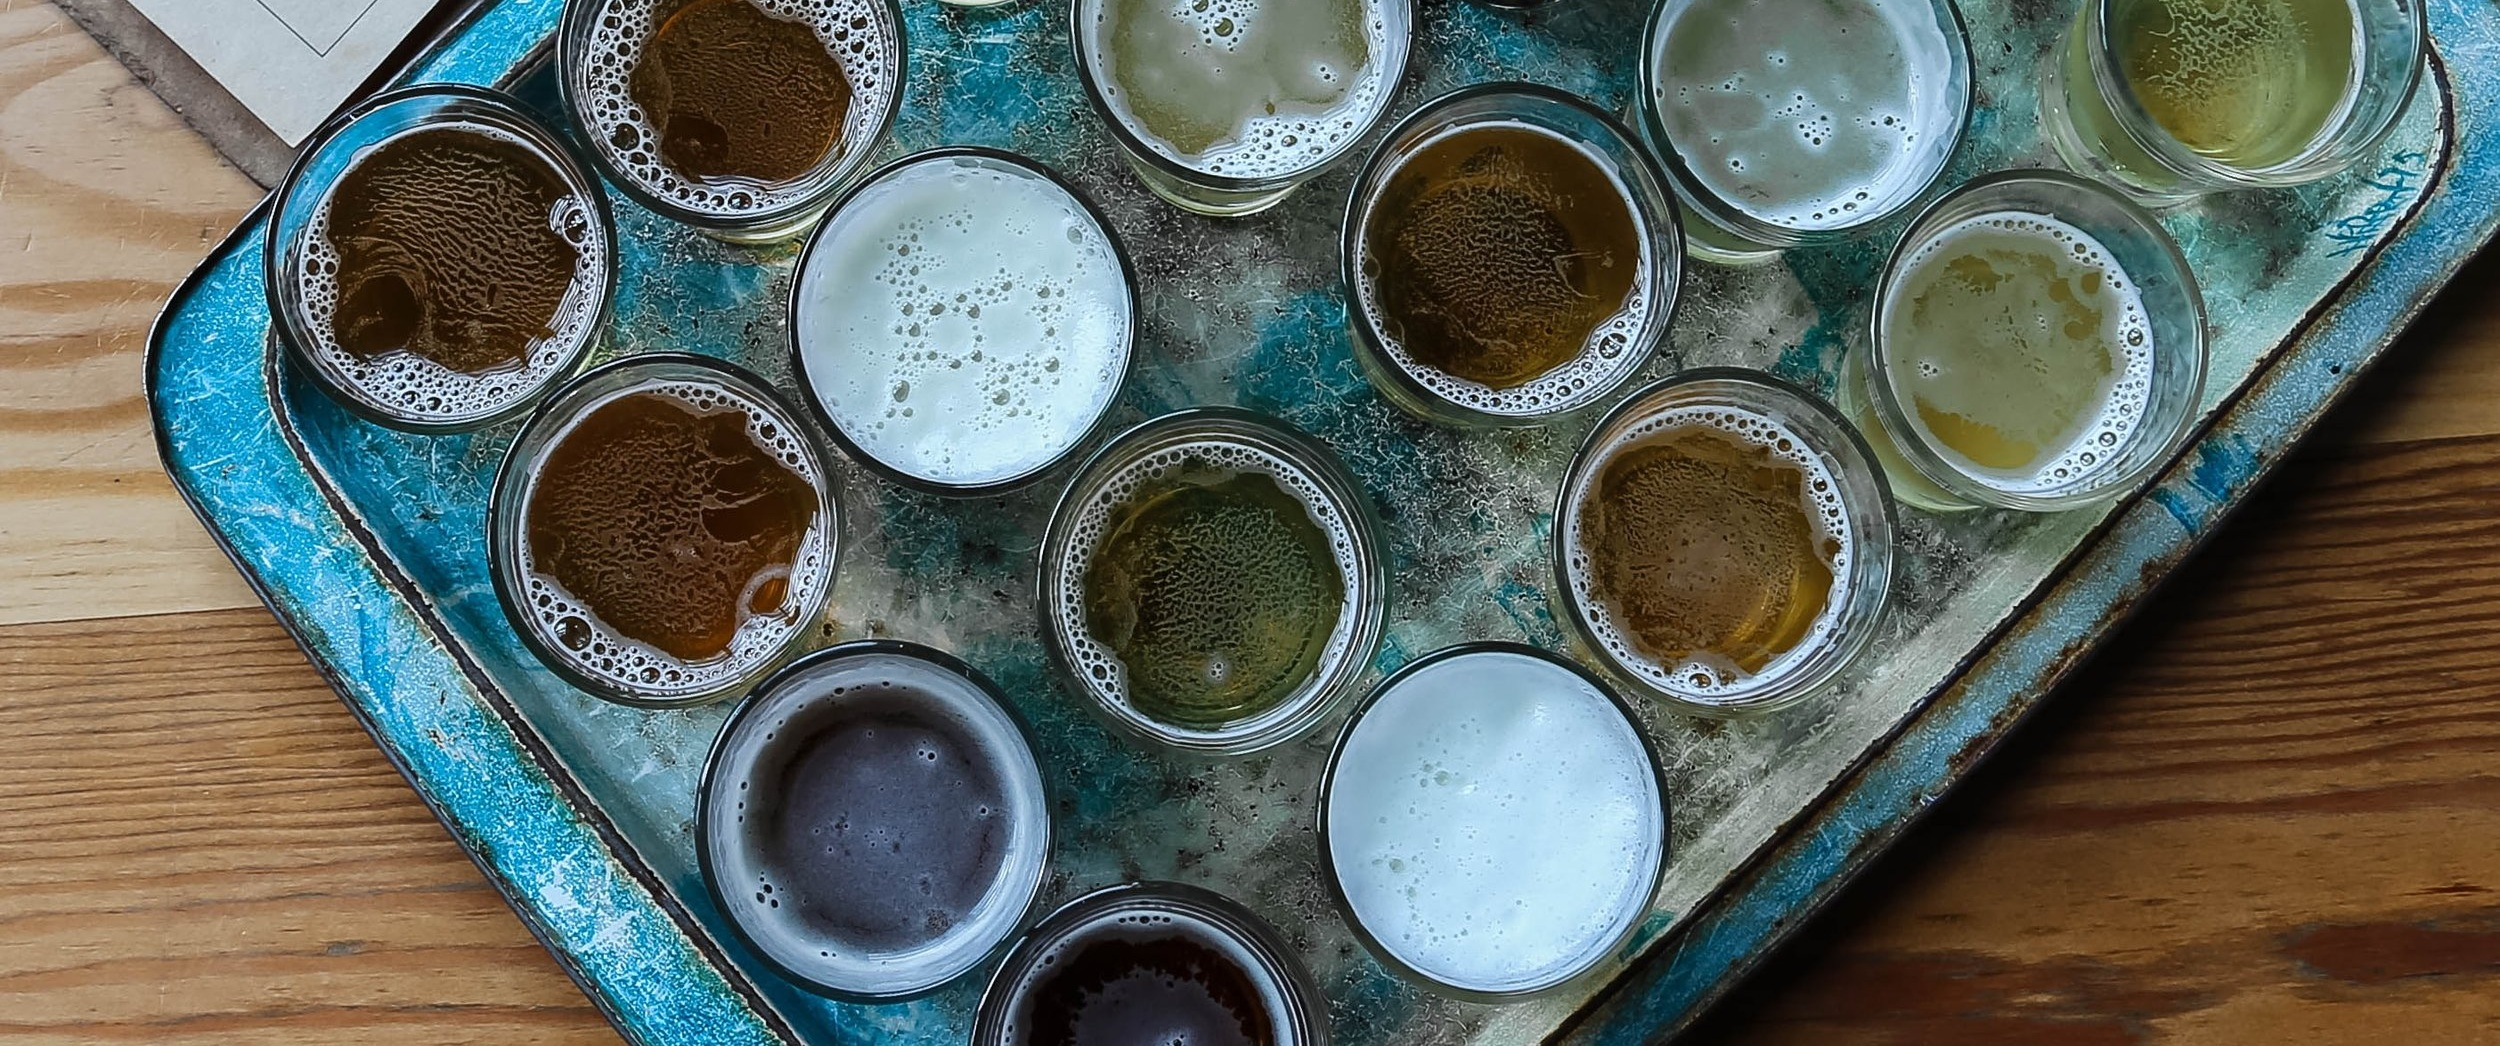 For craft beer novices and connoisseurs alike -